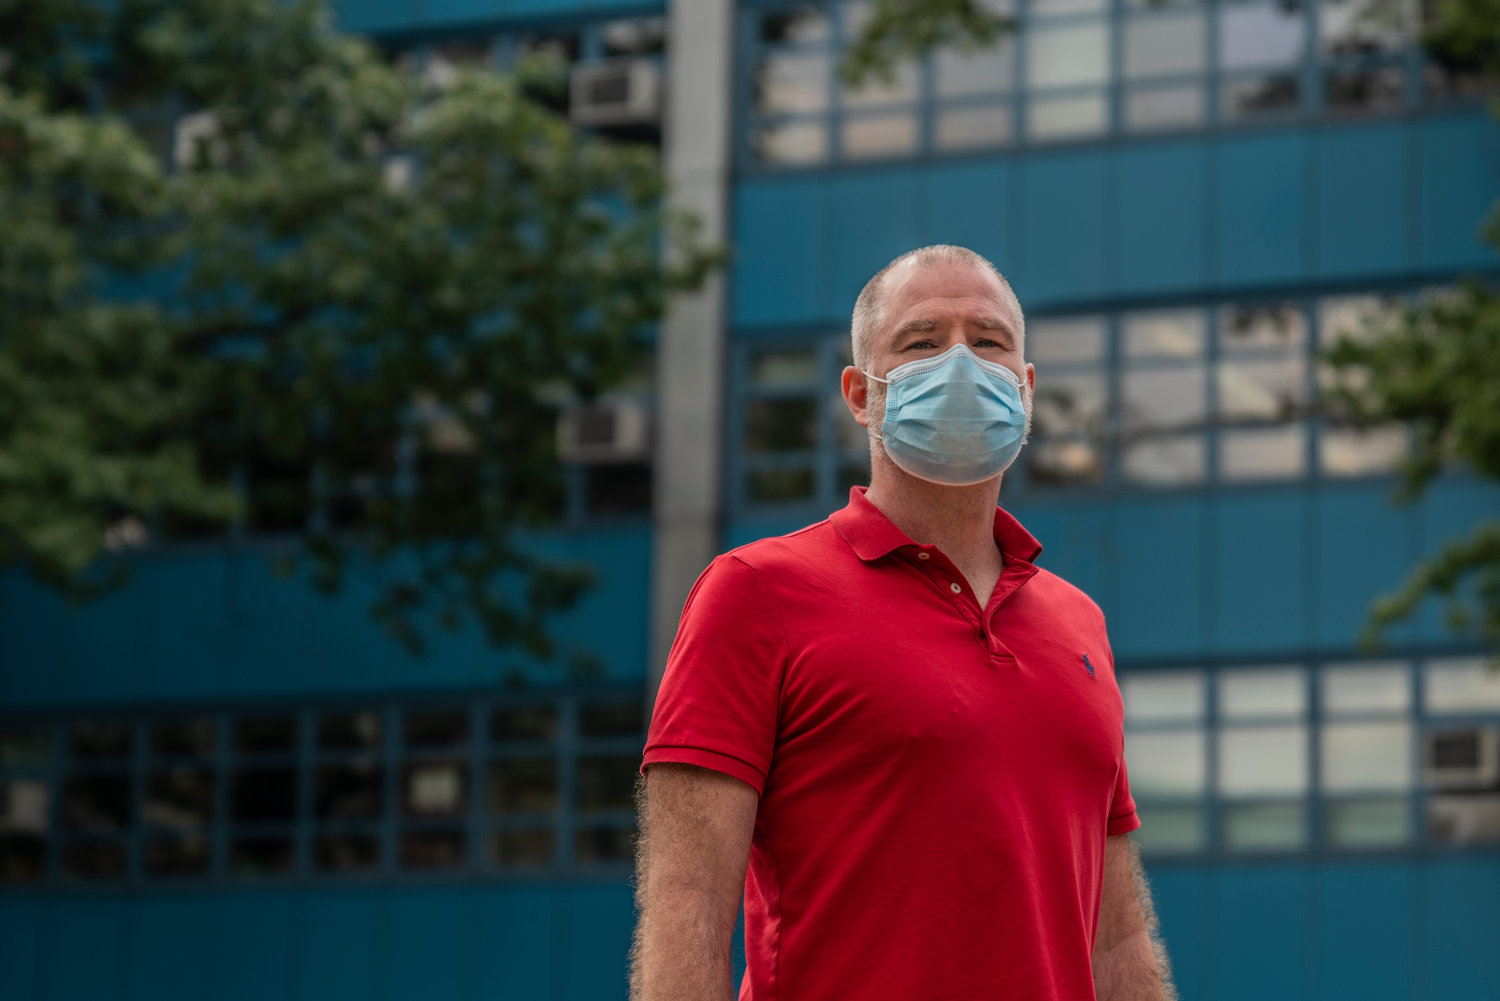 There's a lot on the line in terms of safety this academic year. And while Riverdale/Kingsbridge Academy teacher Michael Flanagan doesn't think his school building is prepared for coronavirus pandemic-era teaching, it's actually several steps ahead compared to other Bronx public schools.